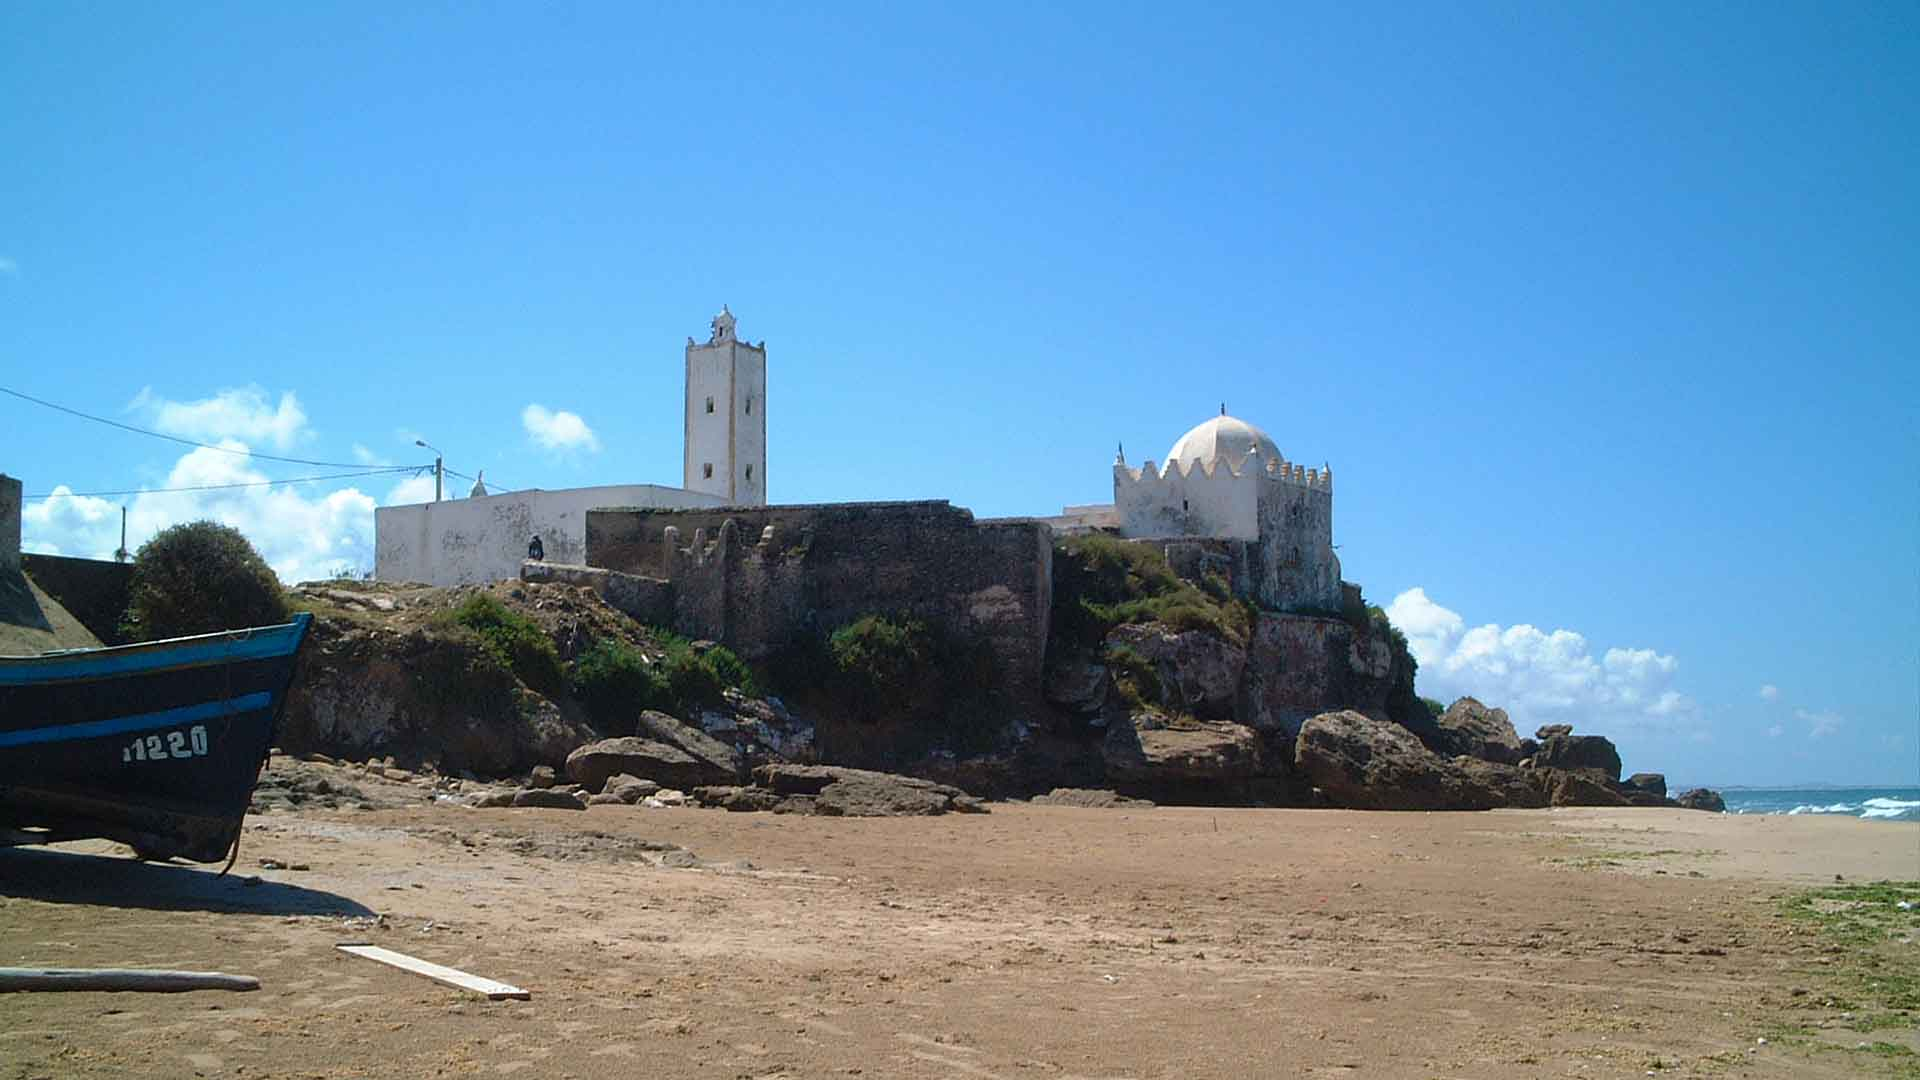 Moulay Bouzerktoun